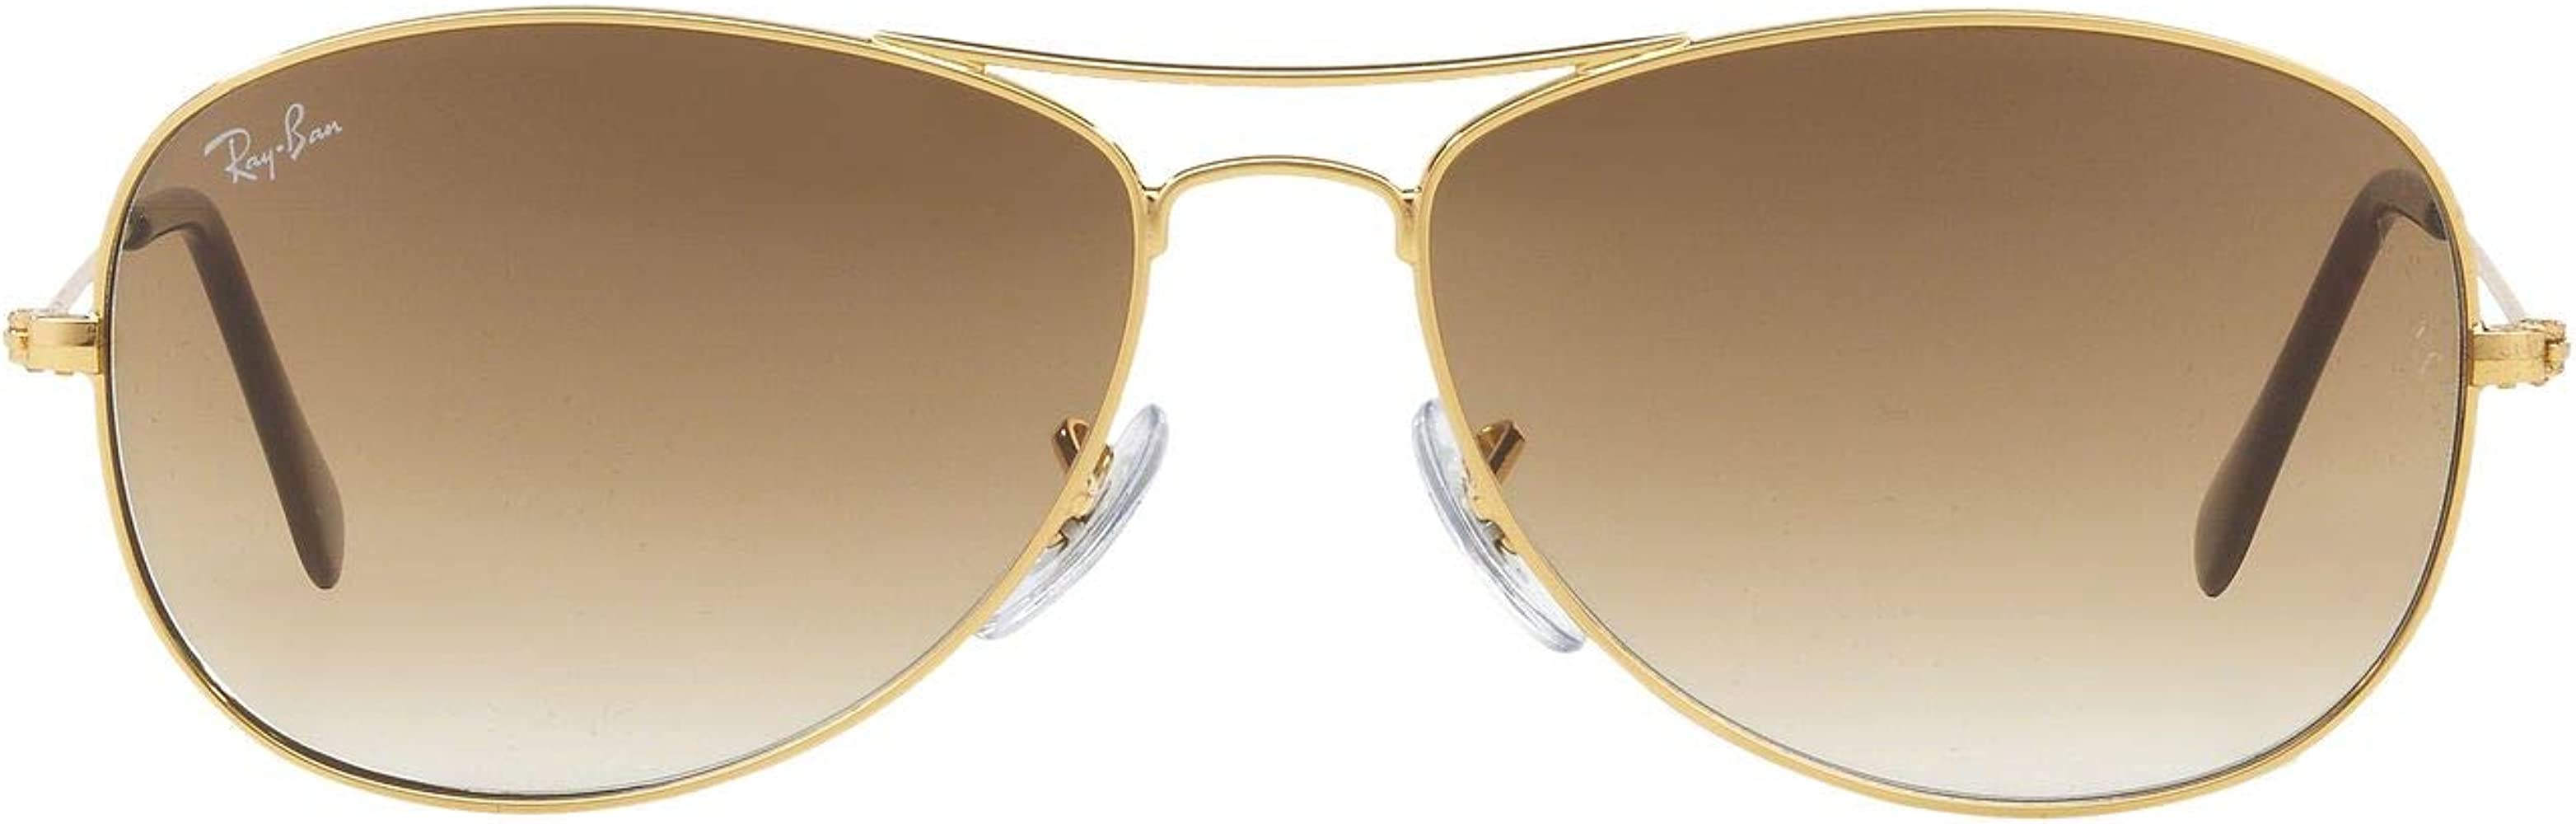 Ray Ban RB3362 COCKPIT Sunglasses For Men For Women